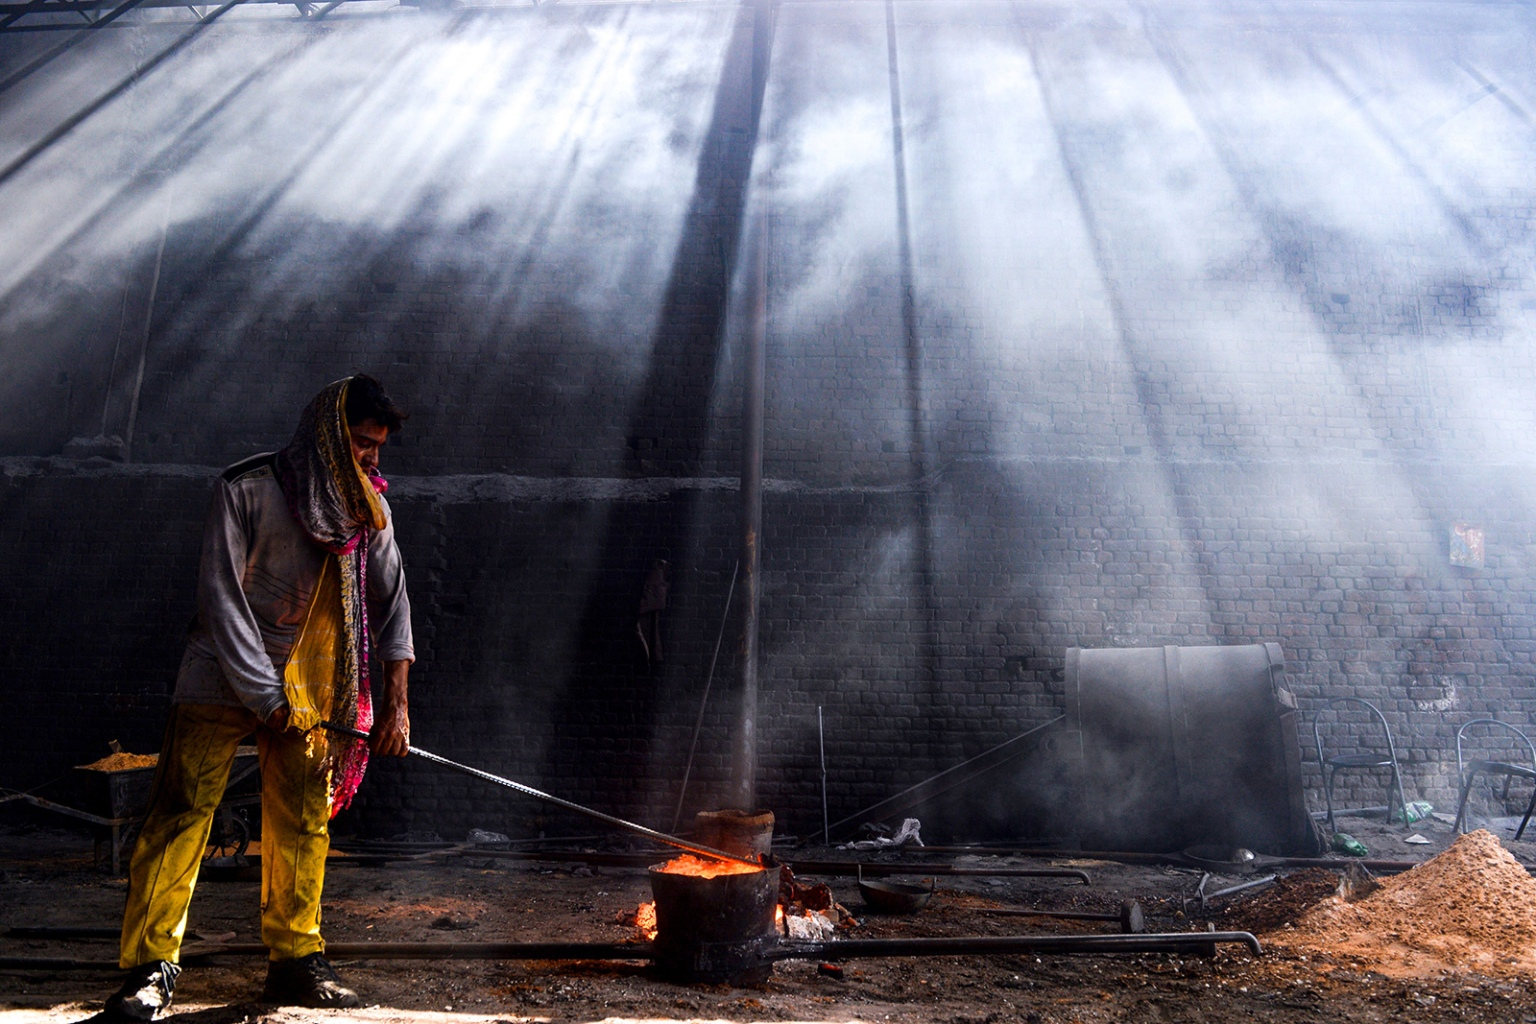 A Pakistani laborer works at an iron factory in Lahore on April 30 on the eve of the International Labor Day celebrated on May 1. ARIF ALI/AFP/Getty Images